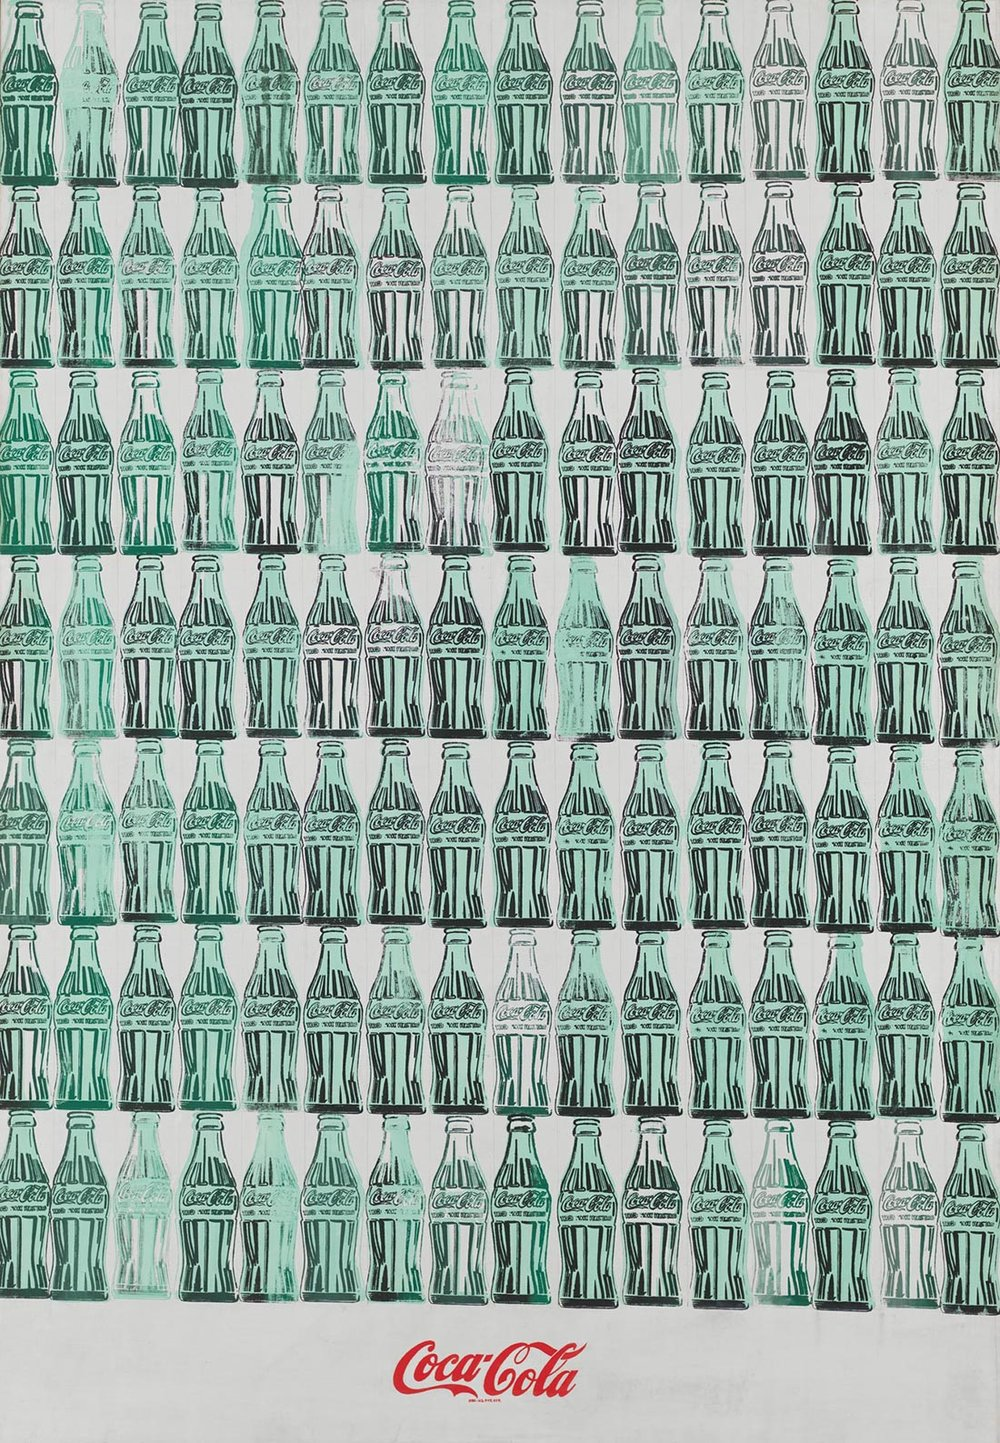 Andy Warhol  (1928-1987),  Green Coca-Cola Bottles , 1962. Acrylic, screenprint, and graphite pencil on canvas, 82 3/4 x 57 1/8 in. (210.2 x 145.1 cm). Whitney Museum of American Art, New York; purchase with funds from the Friends of the Whitney Museum of American Art 68.25. © 2017 The Andy Warhol Foundation for the visual Arts, Inc./ Artists Rights Society (ARS), N.Y.